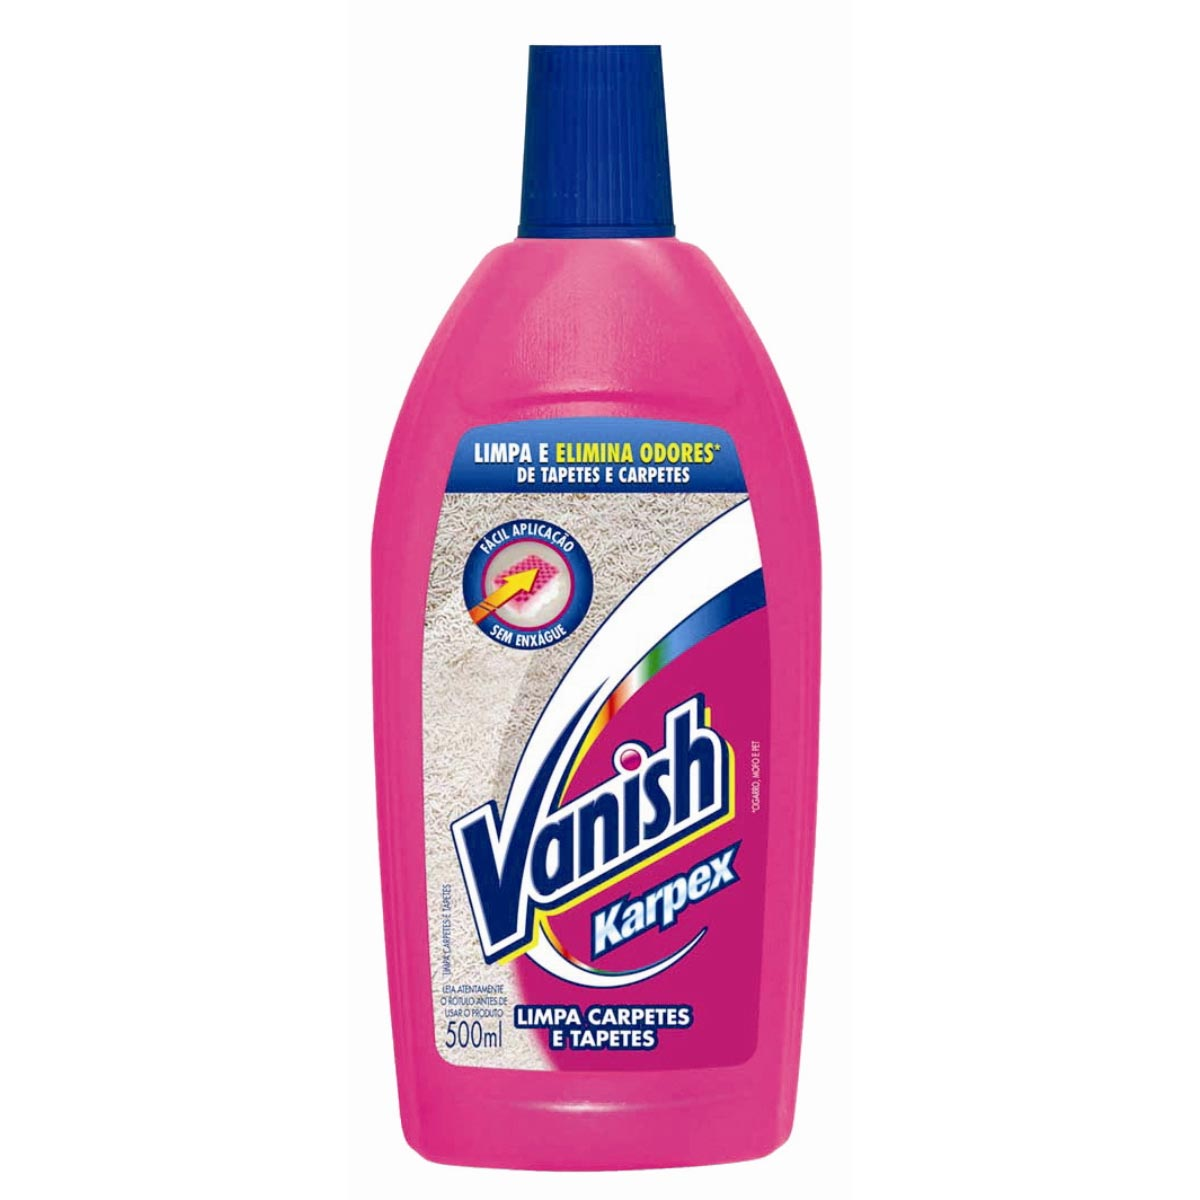 LIMPA CARPETE 500ML KARPEX VANISH